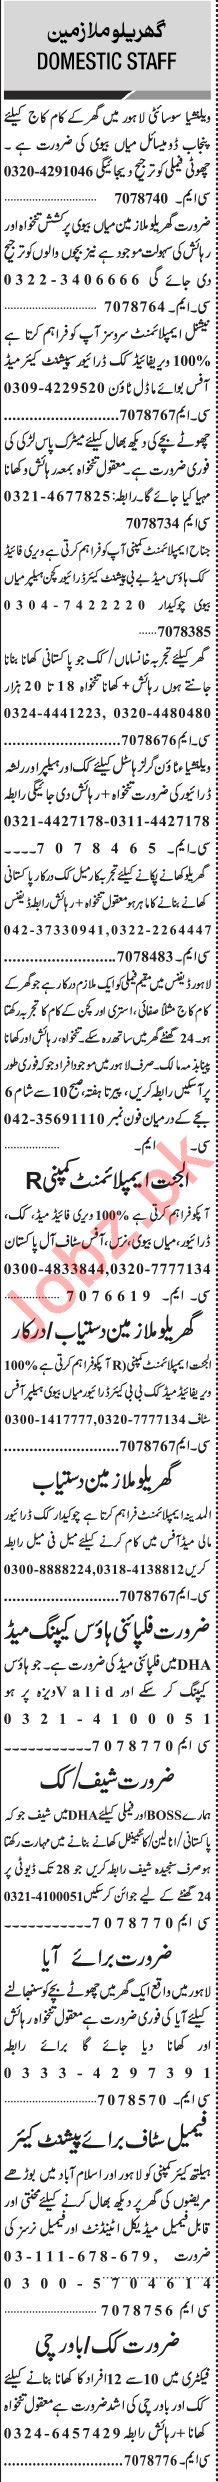 Jang Sunday Classified Ads 26 Jan 2020 for House Staff